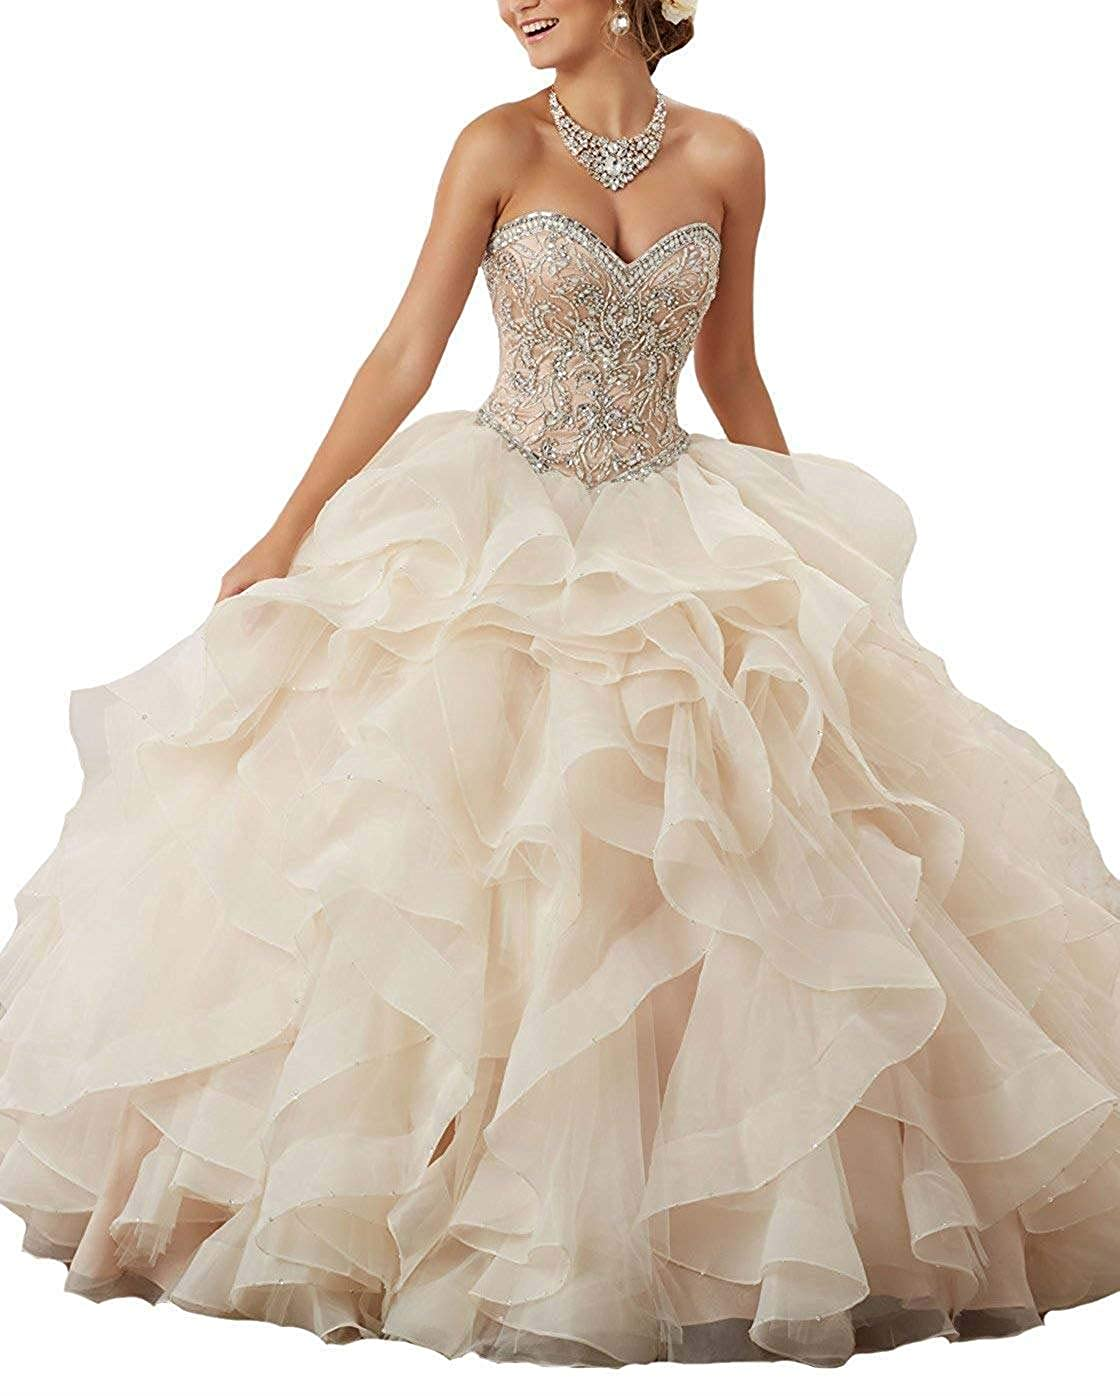 Champagne Jerald Norton Ltd Women's Sweetheart Ruffled Quinceanera Dresses Beaded Organza Princess Ball Gown Champagne